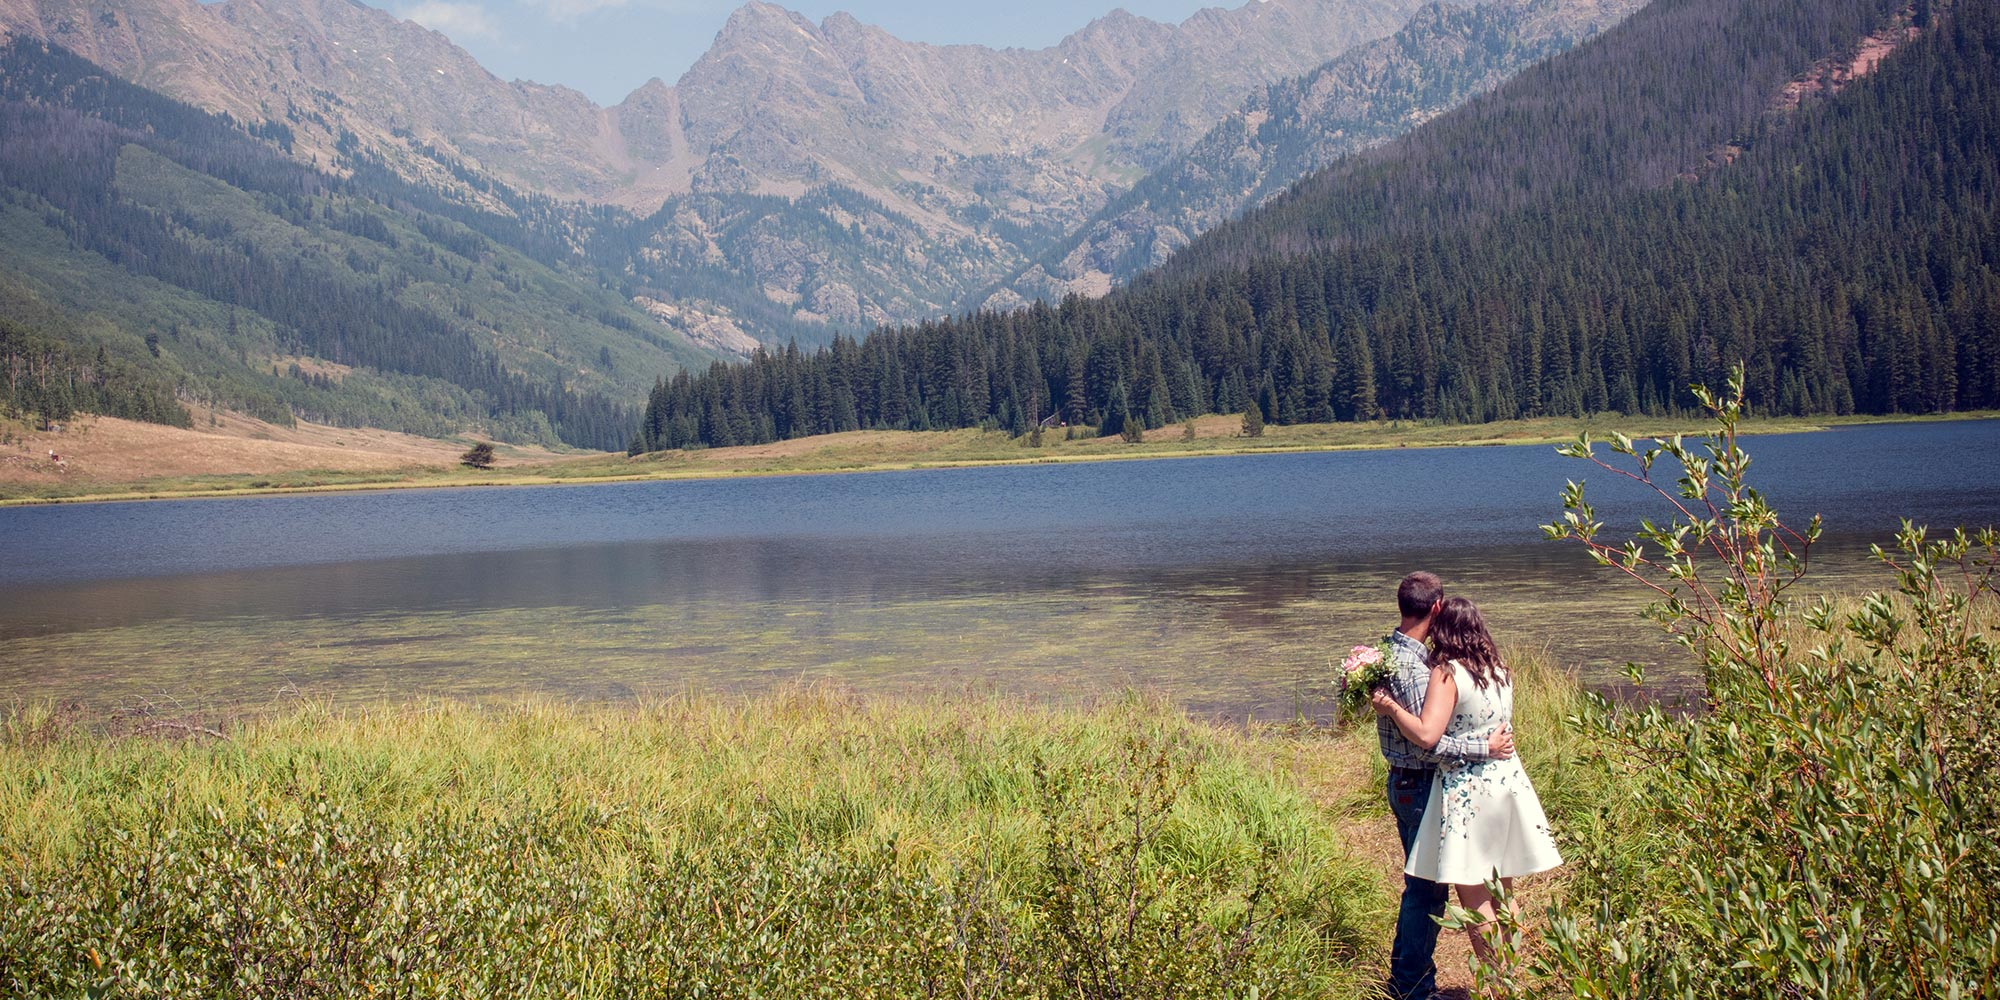 Elope Vail Eloping In Vail Vail Elopements Places To